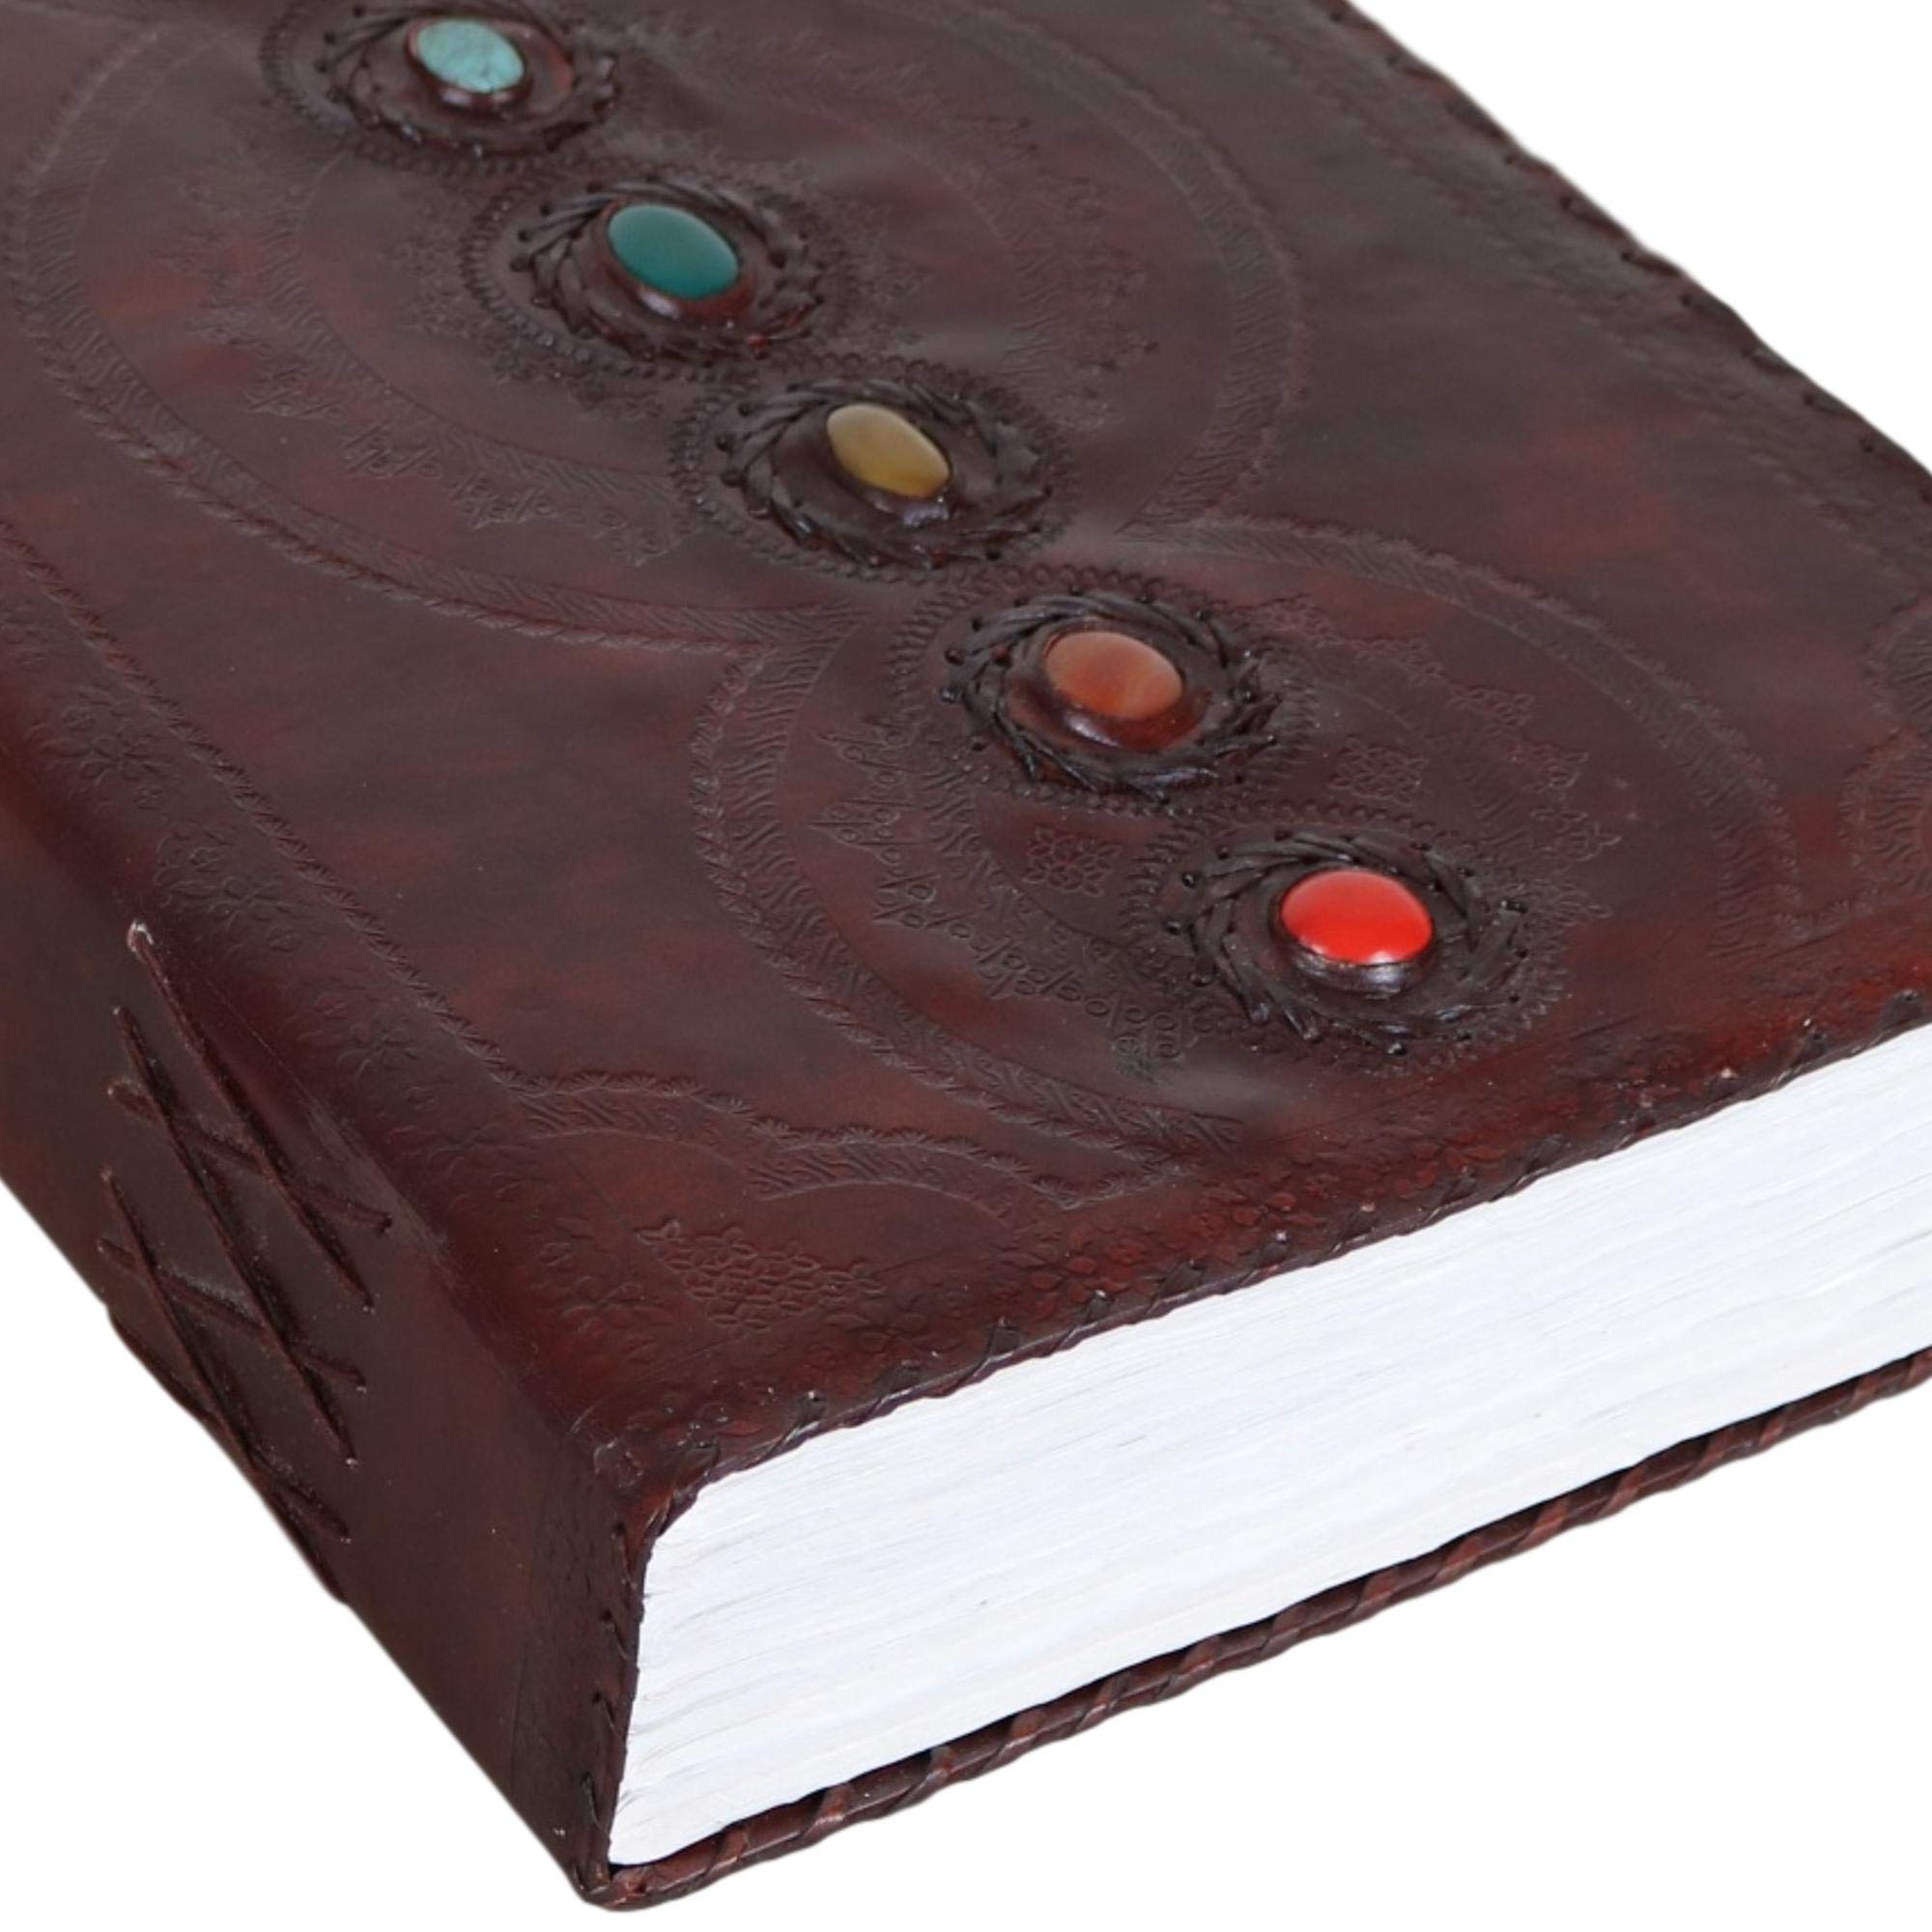 Seven Stone Leather Journal Handmade Notebook Unlined Blank 600 Pages 13 1/2 X 22 inches by  (Image #5)